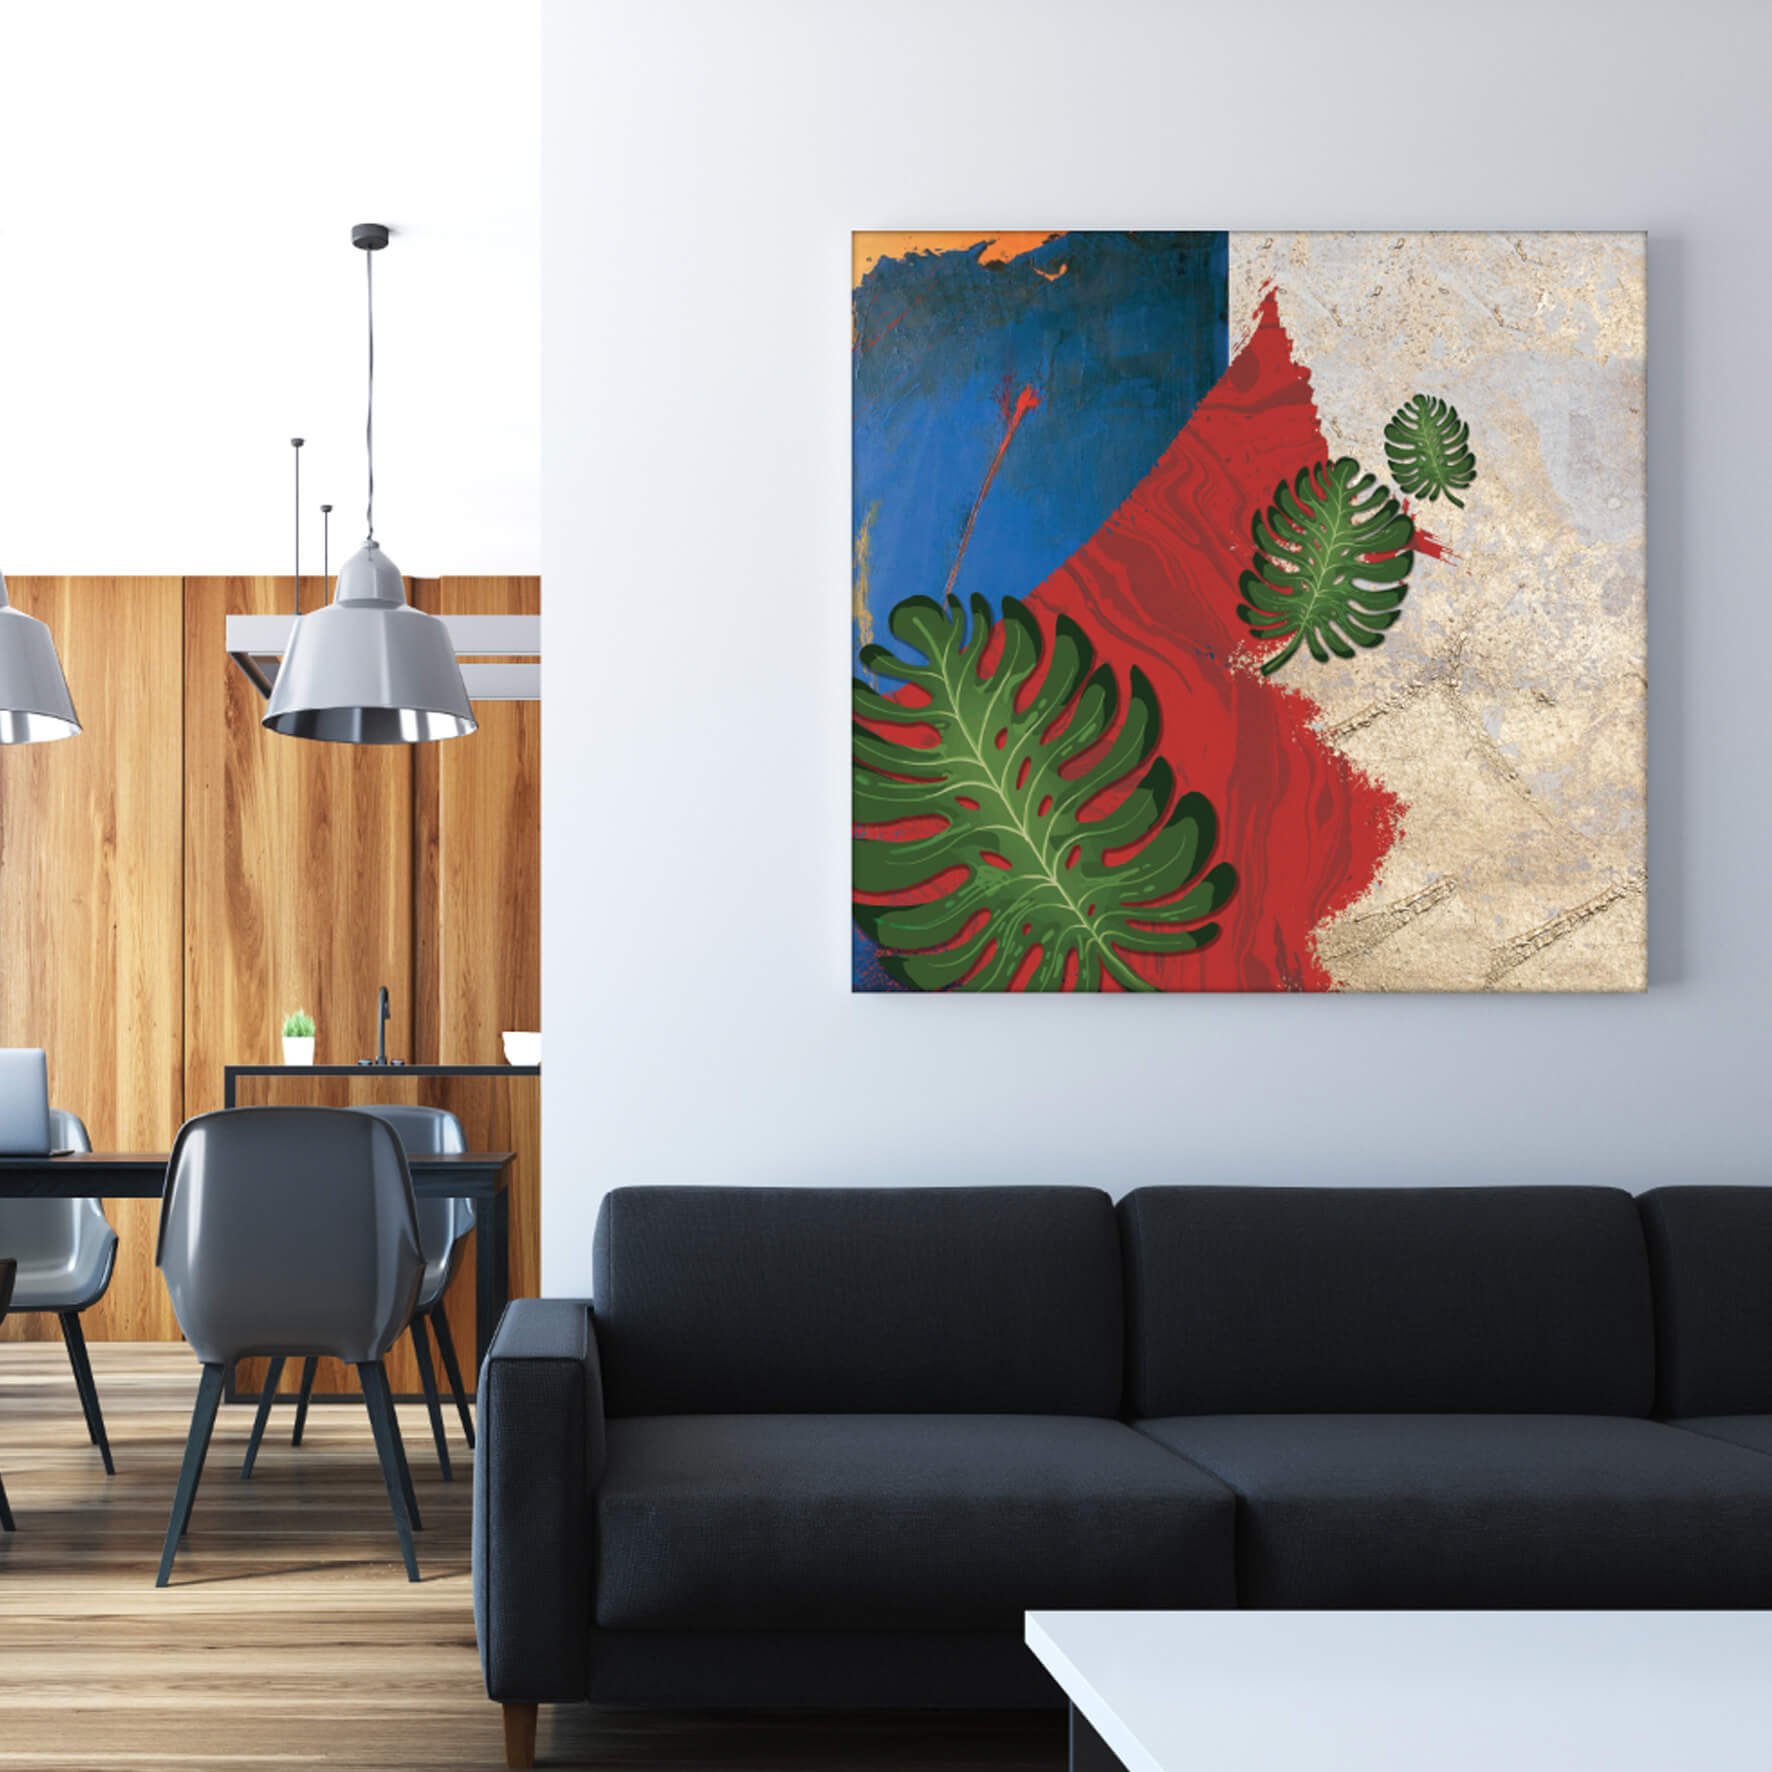 The monstera rustic wall art is a contemporary piece of art sure to pop up